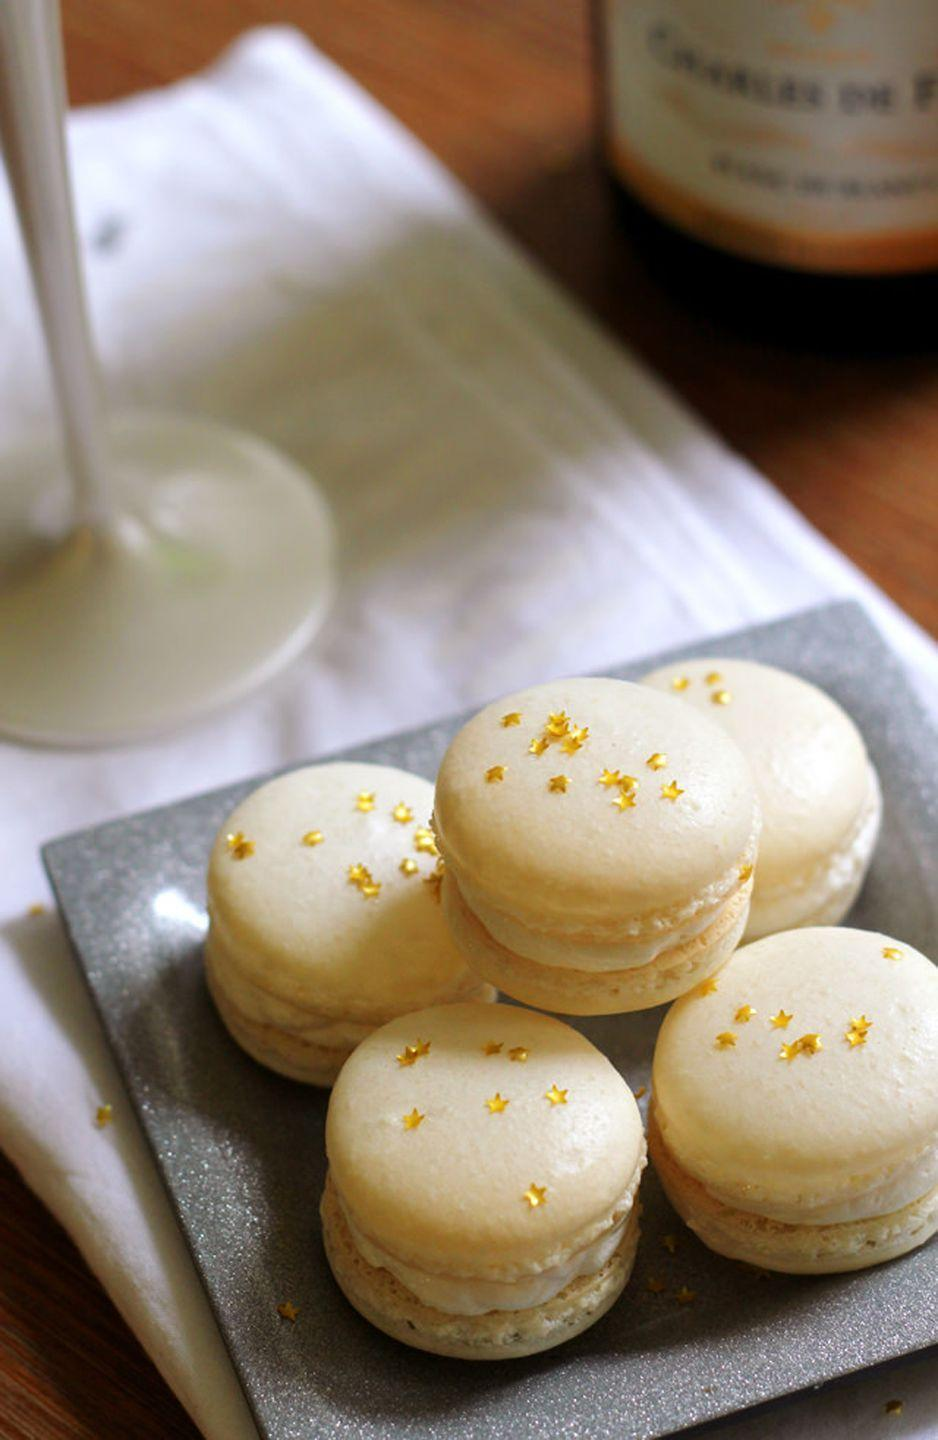 """<p>Bring a little French flavor to your Mother's Day celebration. Made with Champagne-infused buttercream, these macarons are a decadent treat Mom definitely deserves. </p><p><strong>Get the recipe at <a href=""""https://joanne-eatswellwithothers.com/2014/12/champagne-macarons.html"""" rel=""""nofollow noopener"""" target=""""_blank"""" data-ylk=""""slk:Eats Well With Others"""" class=""""link rapid-noclick-resp"""">Eats Well With Others</a>.</strong></p><p><a class=""""link rapid-noclick-resp"""" href=""""https://www.amazon.com/Ateco-3124-Plastic-Decorating-Reusable/dp/B000638B34?tag=syn-yahoo-20&ascsubtag=%5Bartid%7C10050.g.4238%5Bsrc%7Cyahoo-us"""" rel=""""nofollow noopener"""" target=""""_blank"""" data-ylk=""""slk:SHOP PIPING BAGS"""">SHOP PIPING BAGS</a> </p>"""